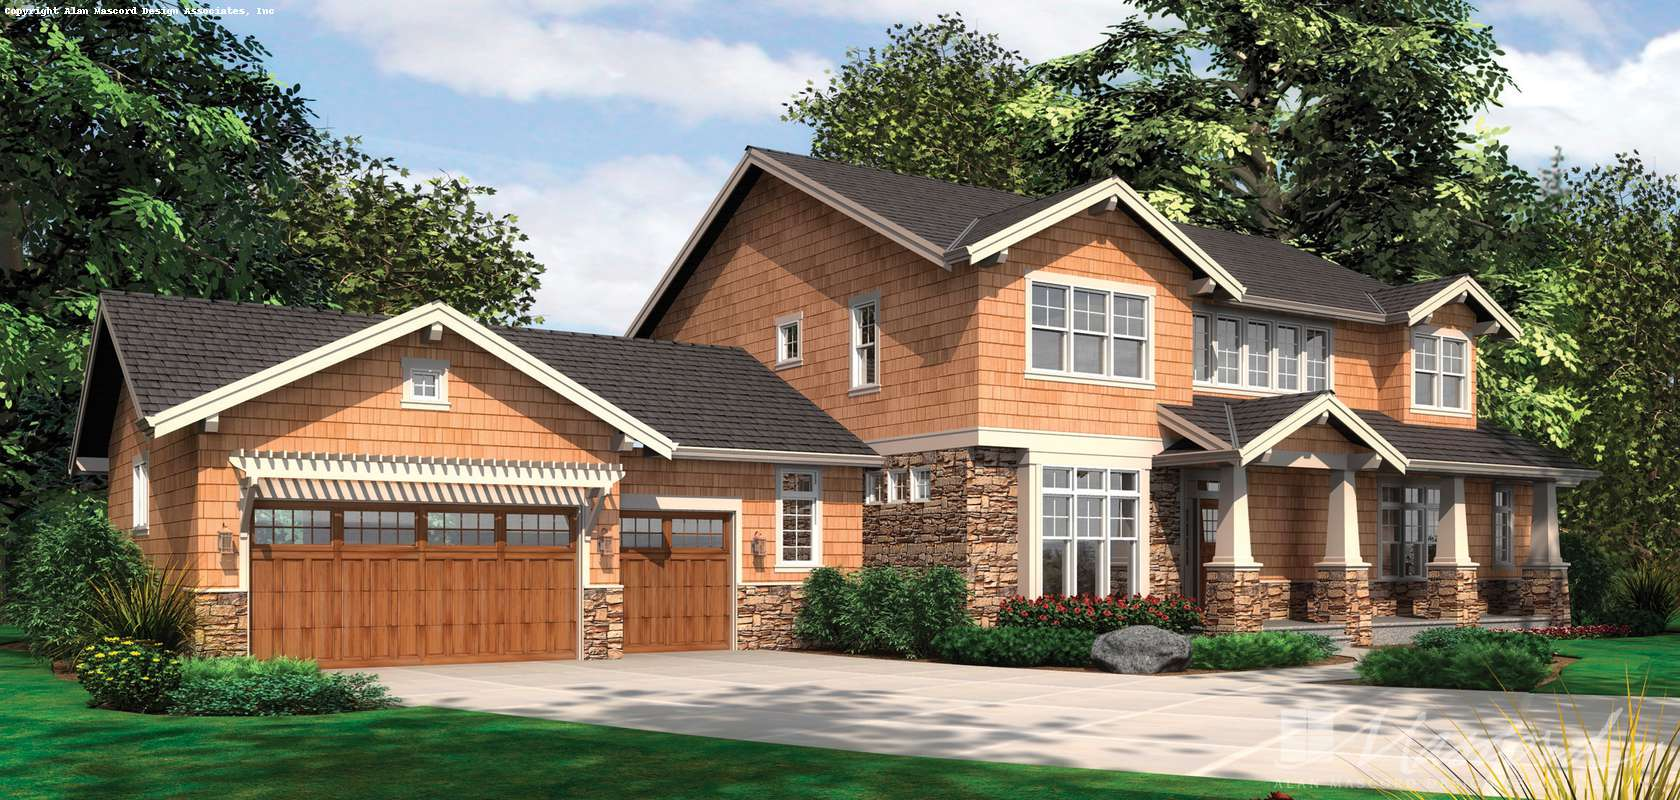 Mascord House Plan B2383: The Lofton